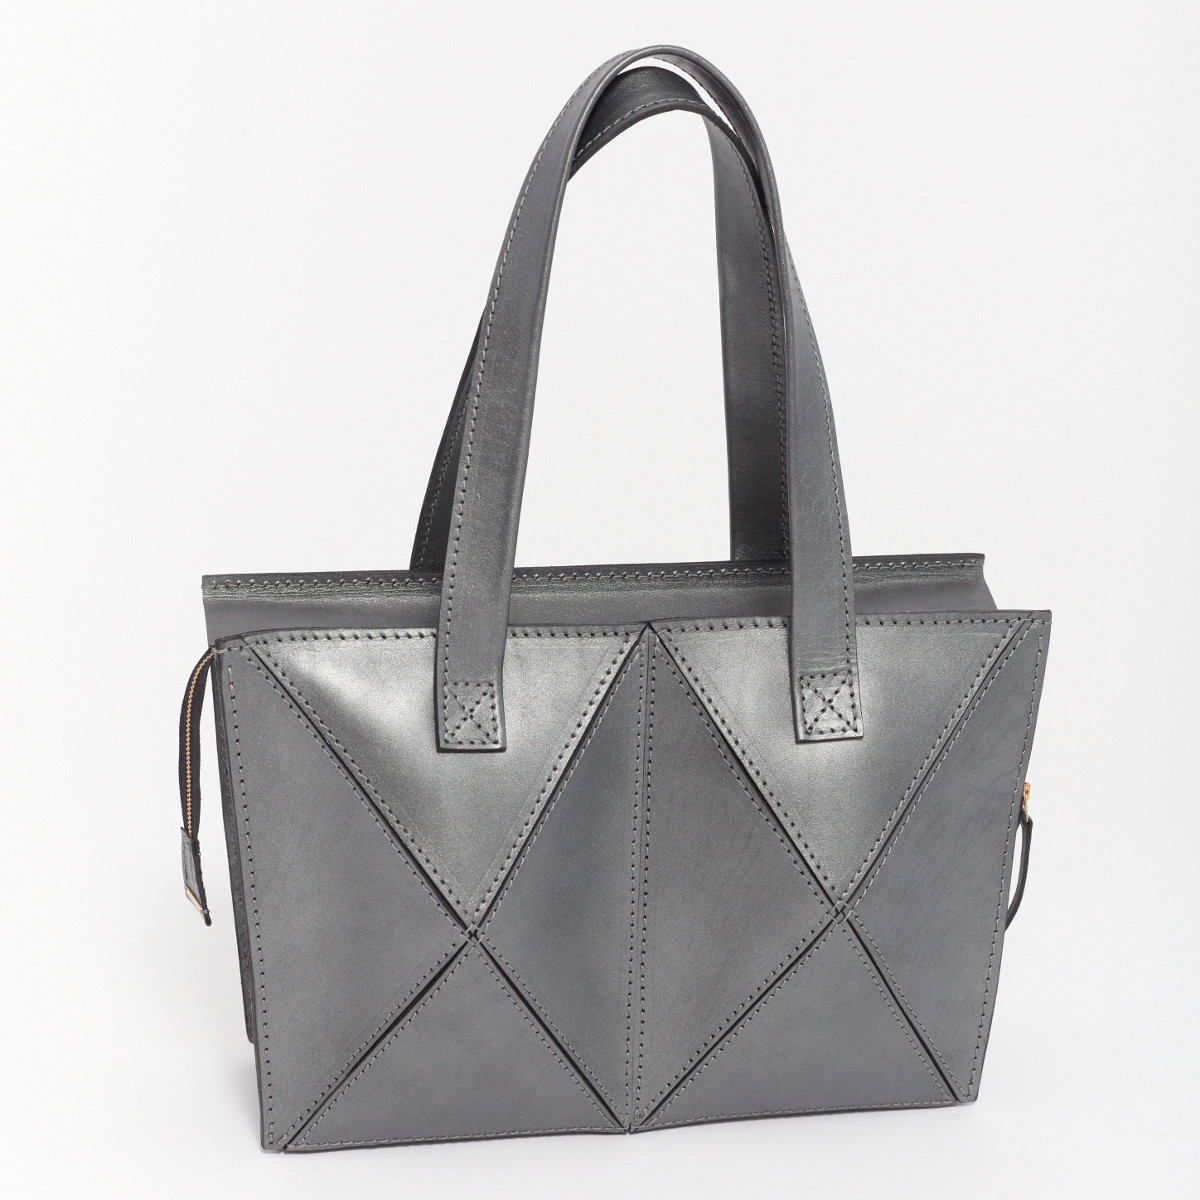 THE HILLS BAG, SILVER